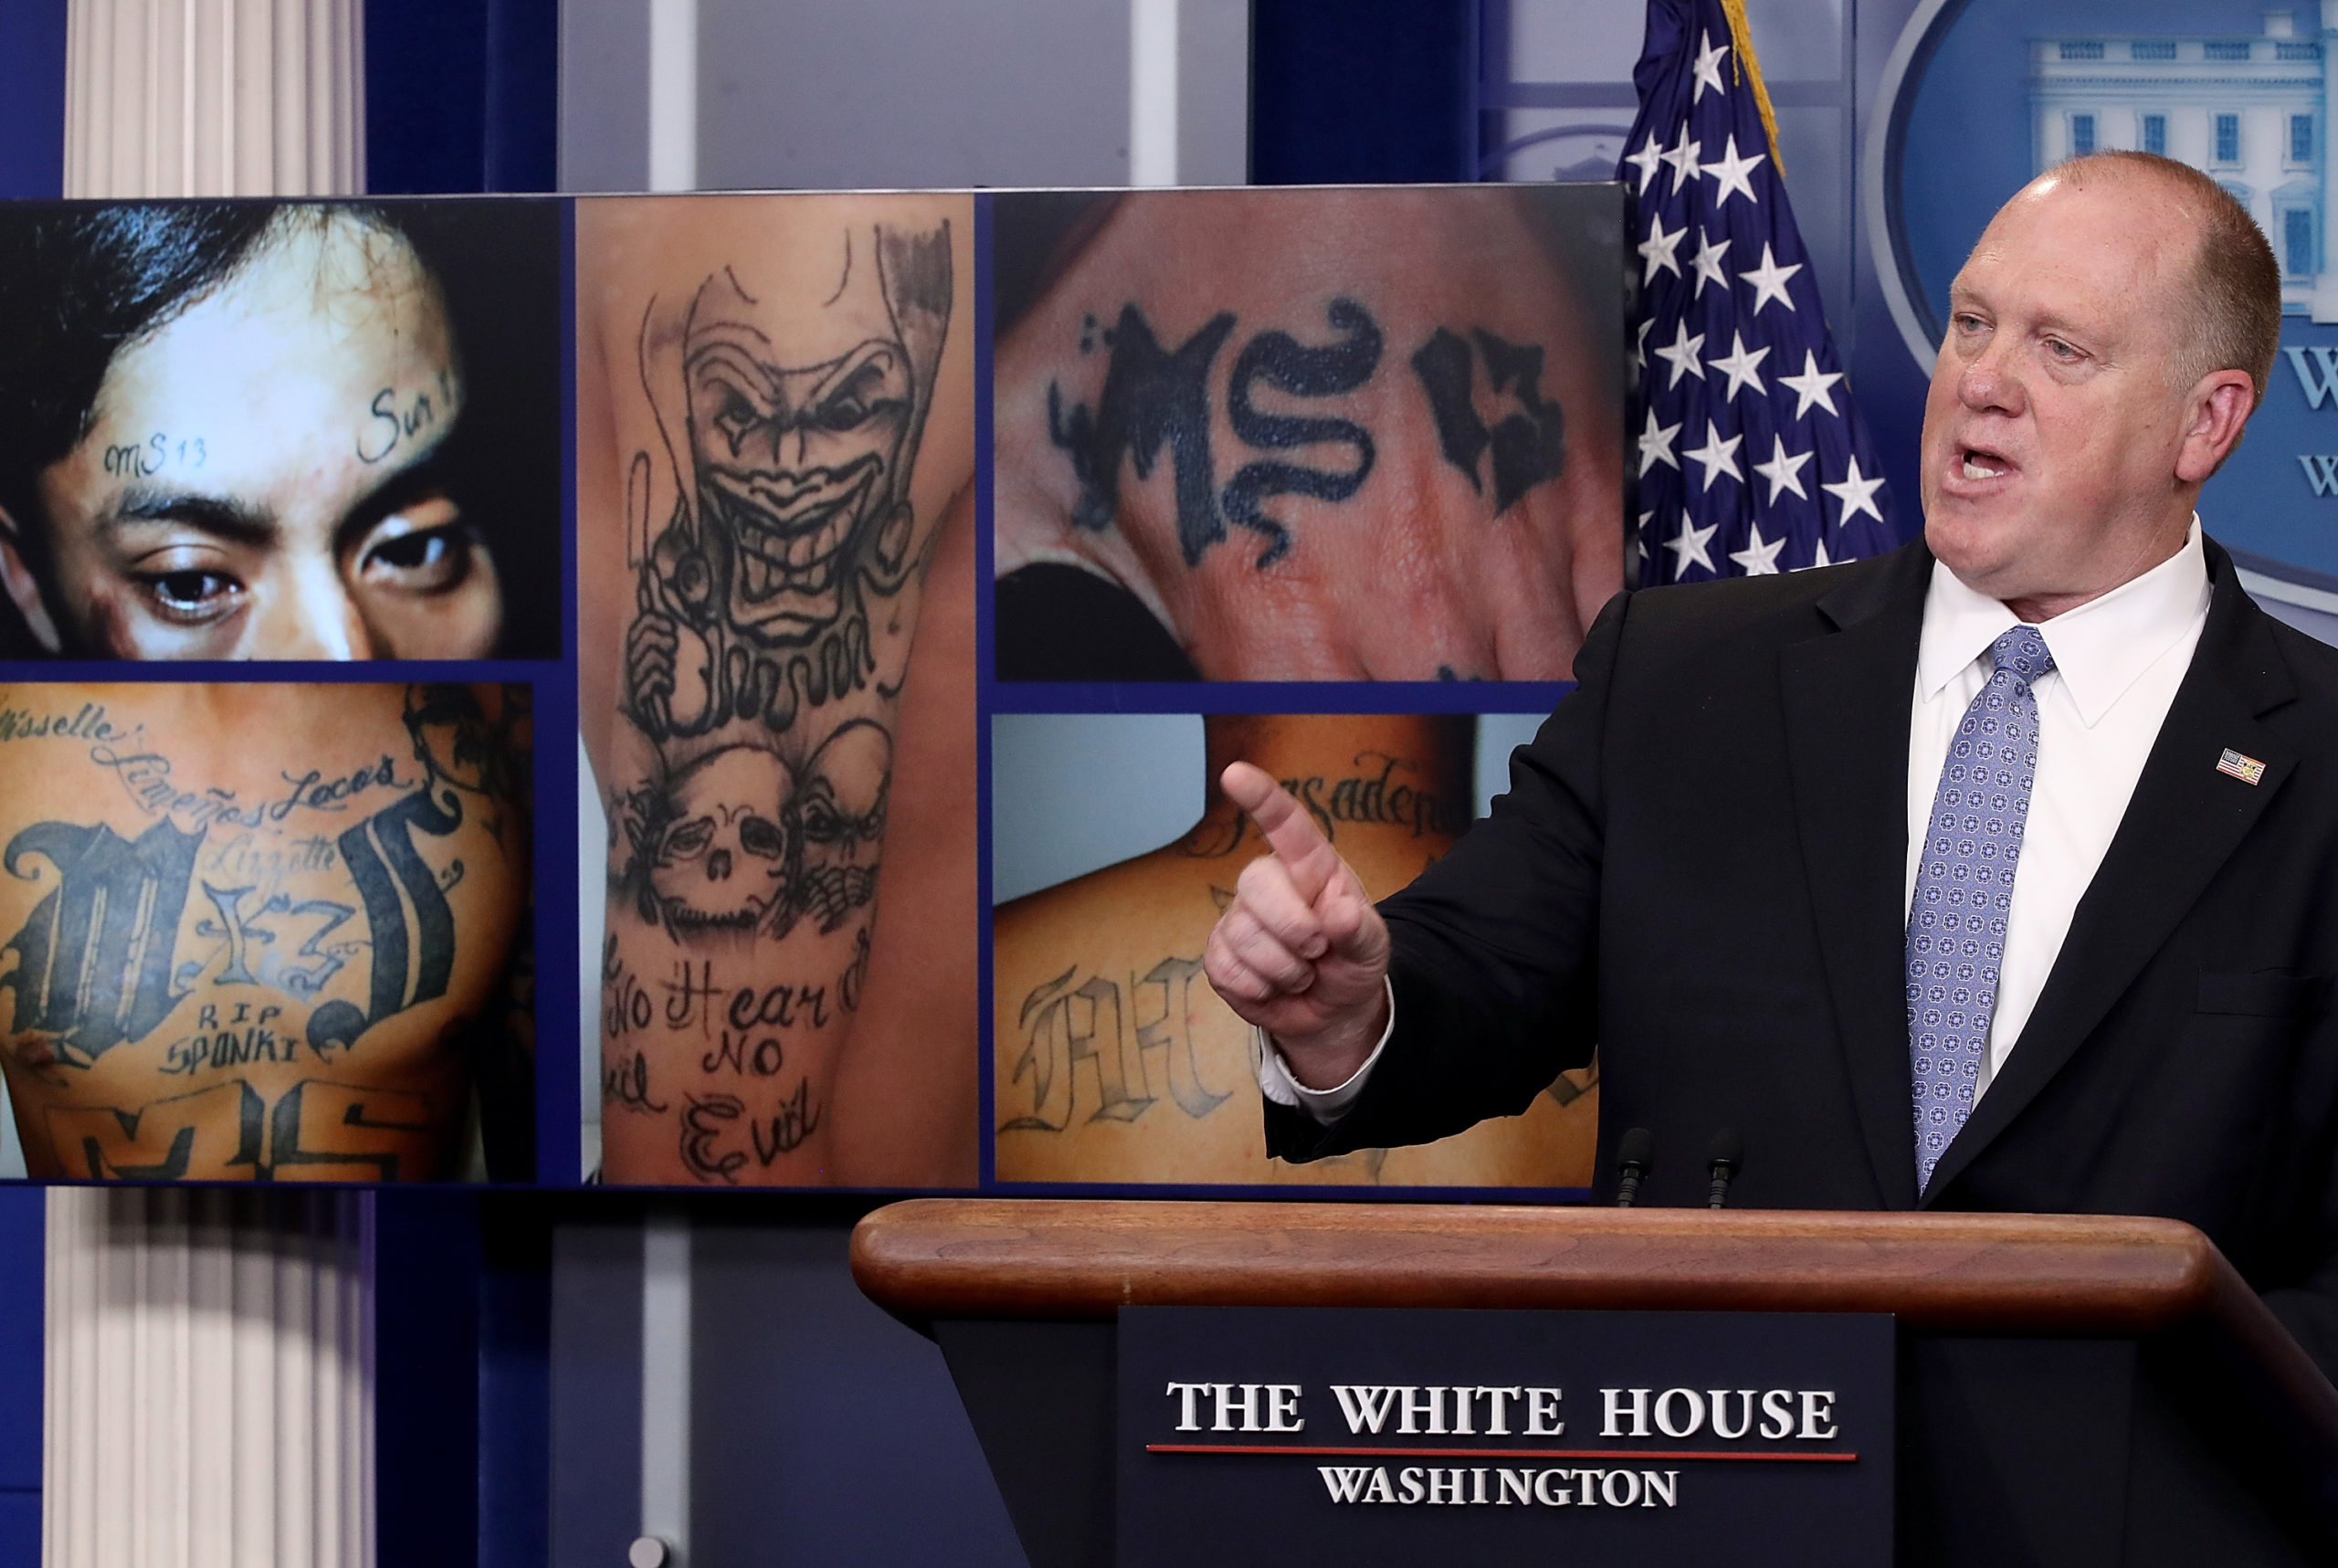 WASHINGTON, DC - JULY 27: Tom Homan, Director of Immigration and Customs Enforcement, answers questions in front of gang related photos from the MS-13 gang during a daily briefing at the White House July 27, 2017 in Washington, DC. Homan answered a range of questions during the briefing. (Win McNamee/Getty Images)